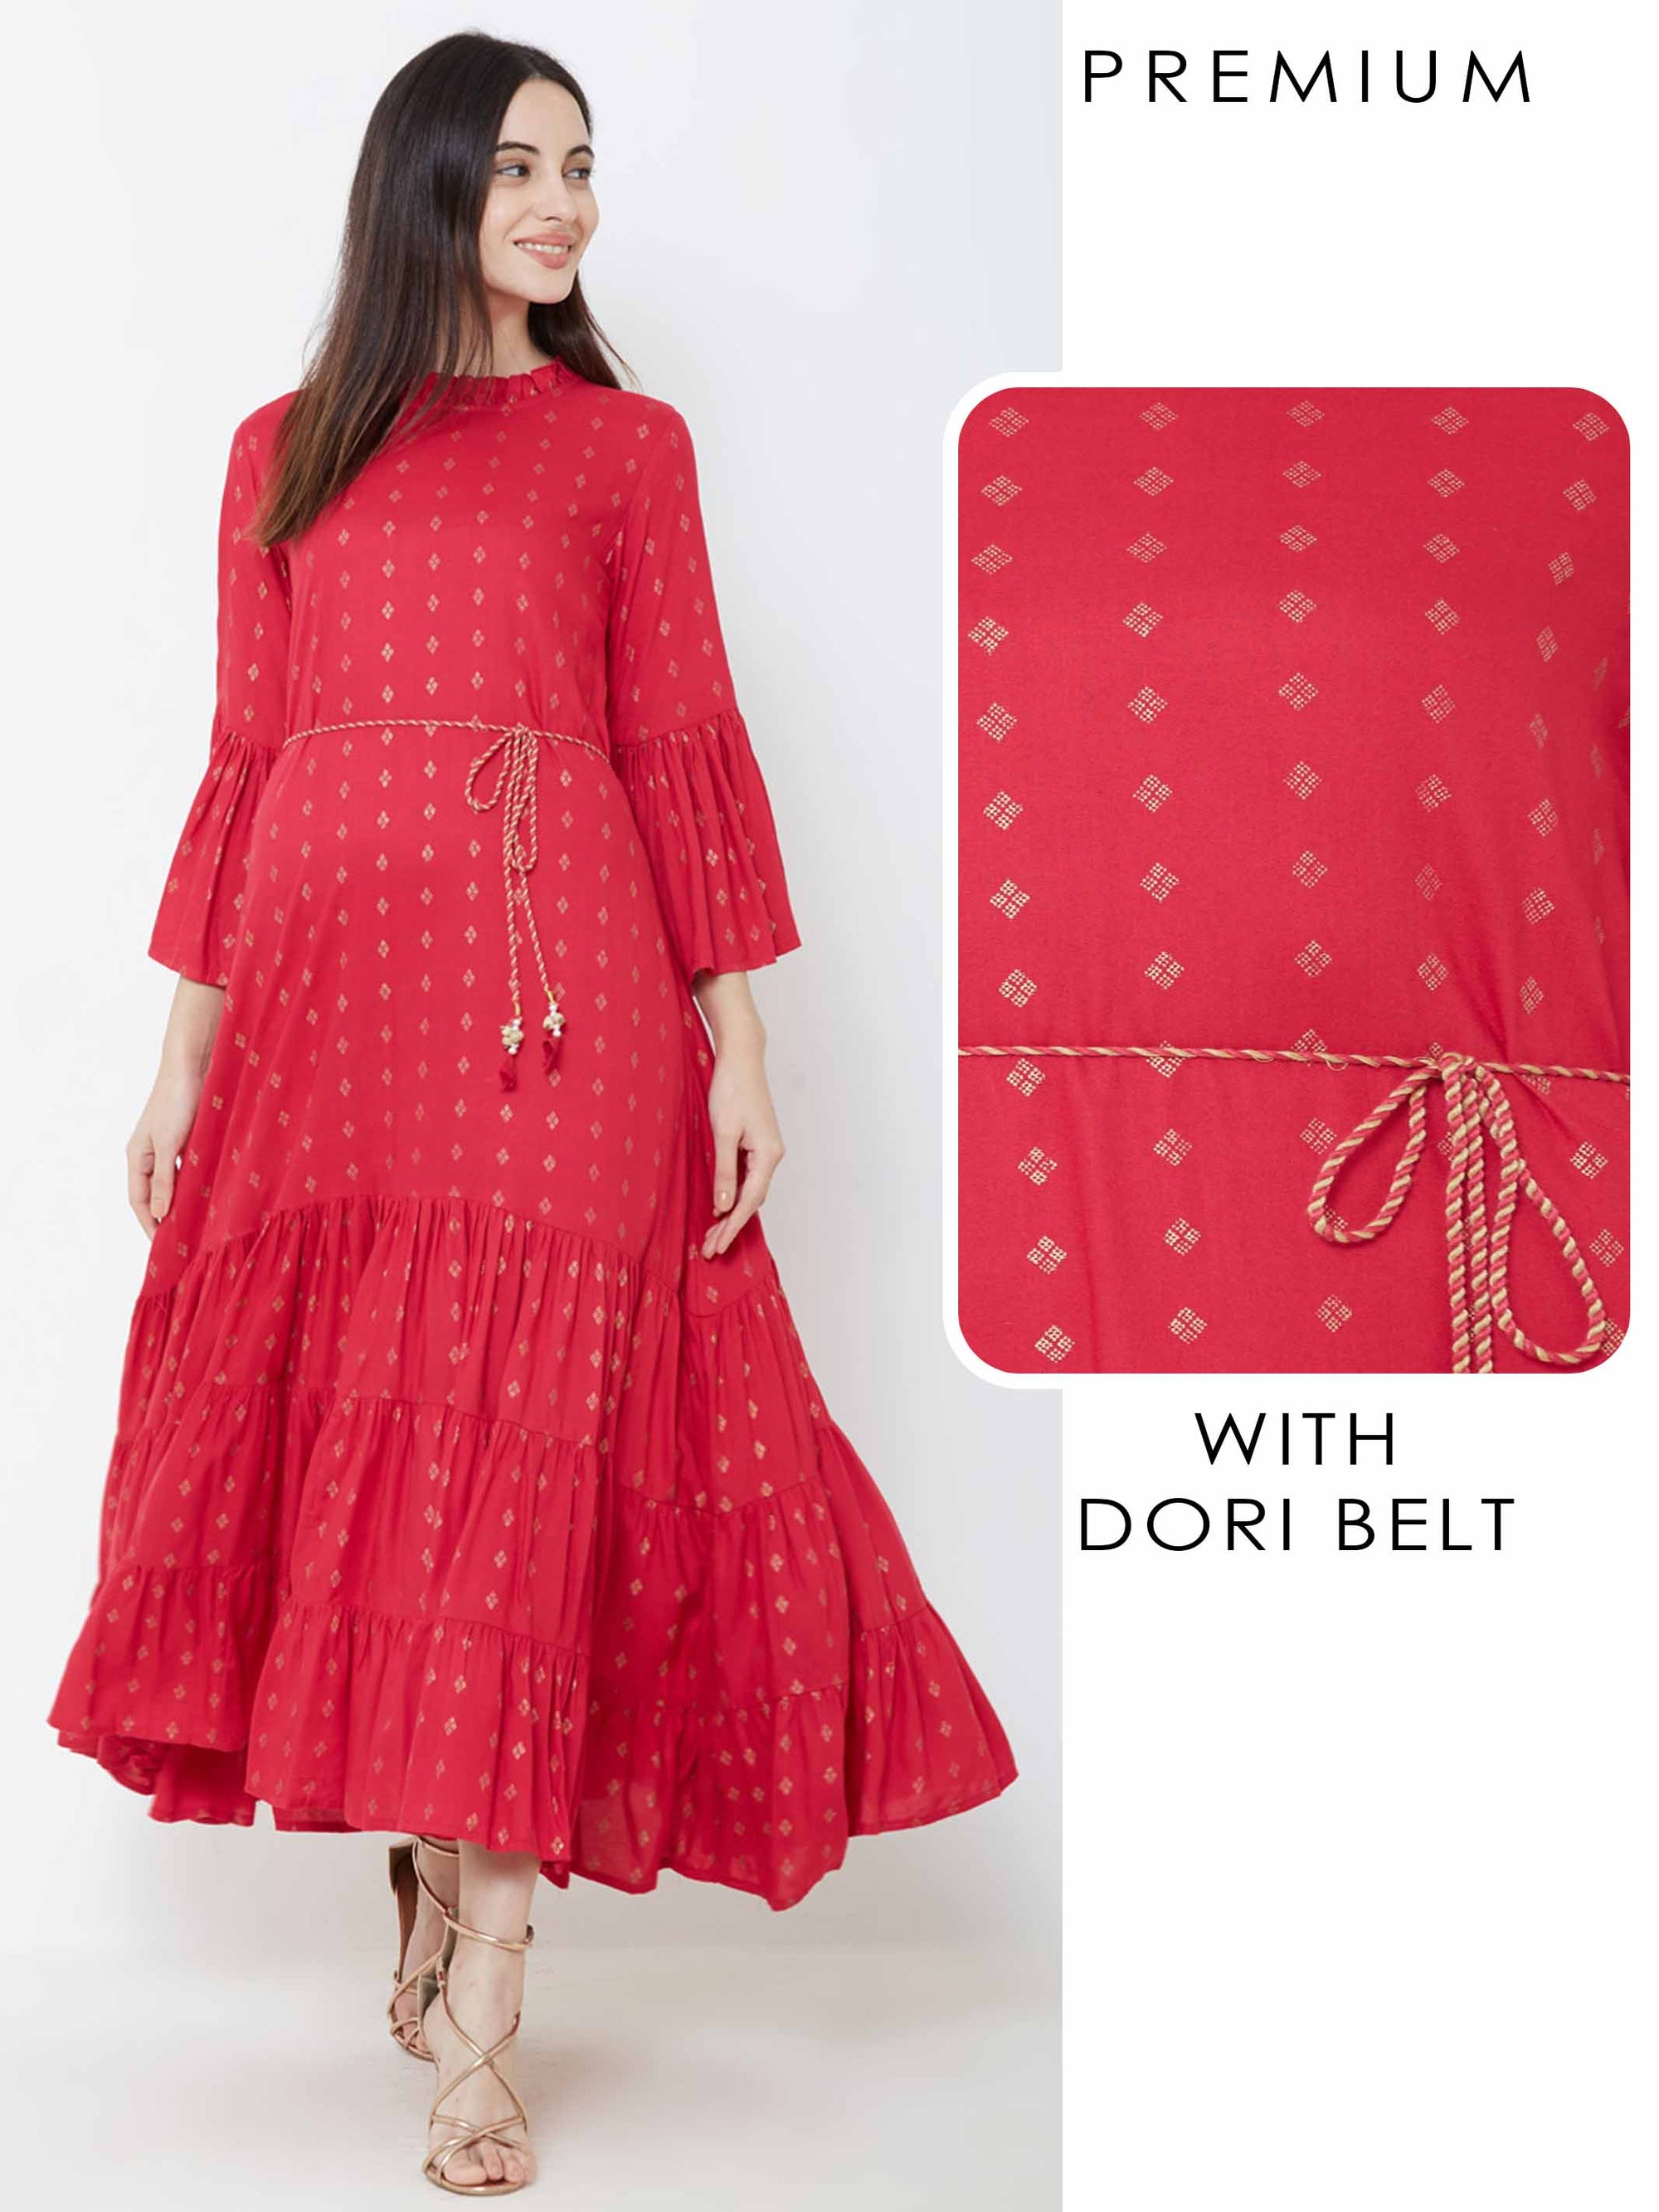 Minimal Foil Printed Tiered Maxi with Dori Belt – Pink